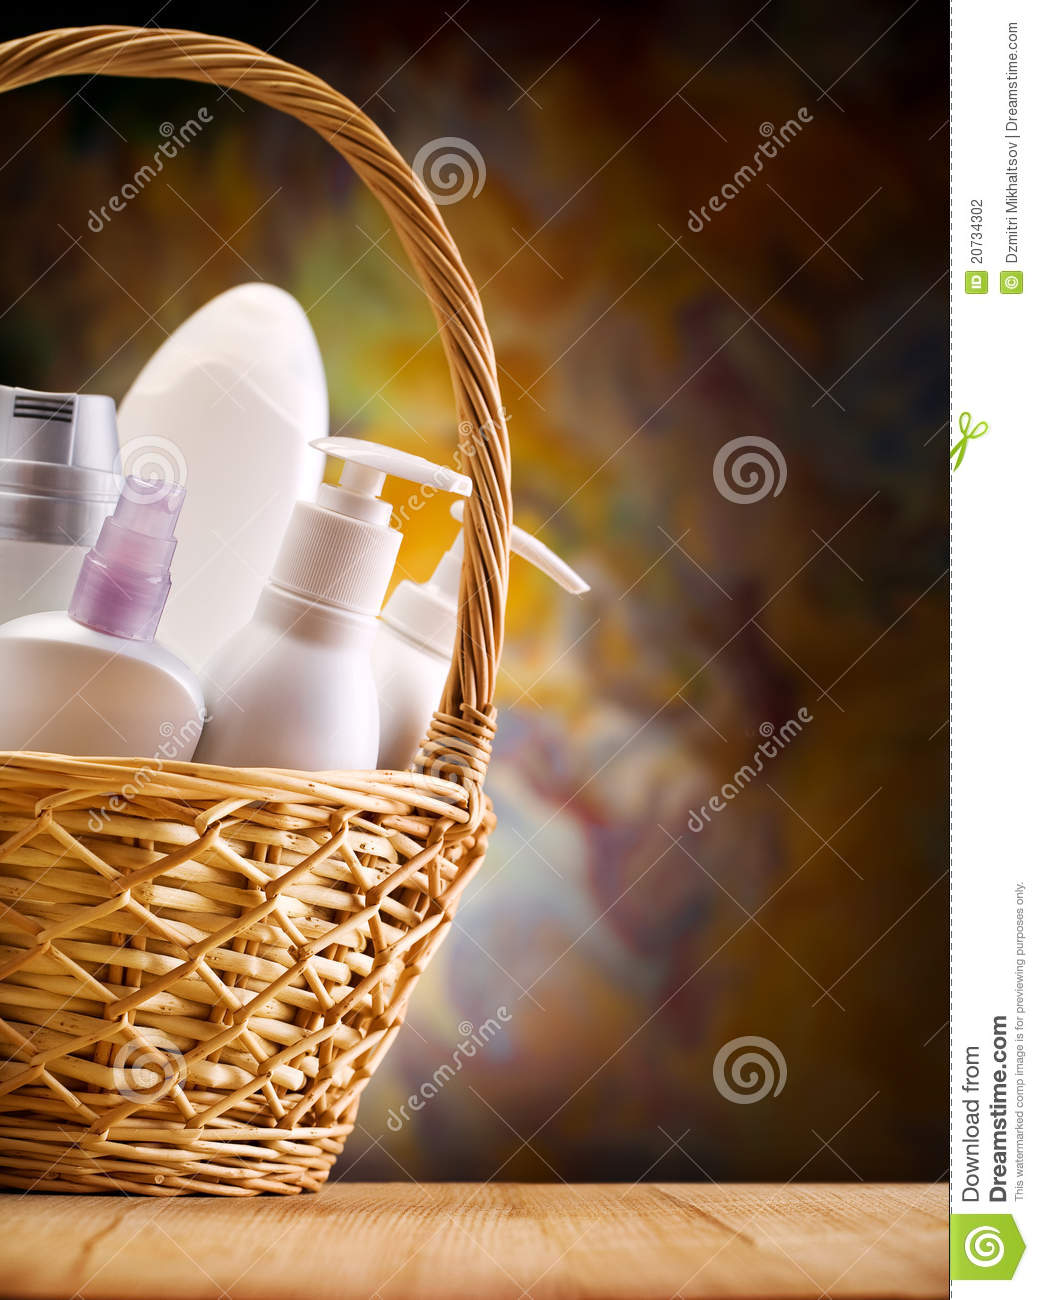 Skincare items in wicker basket